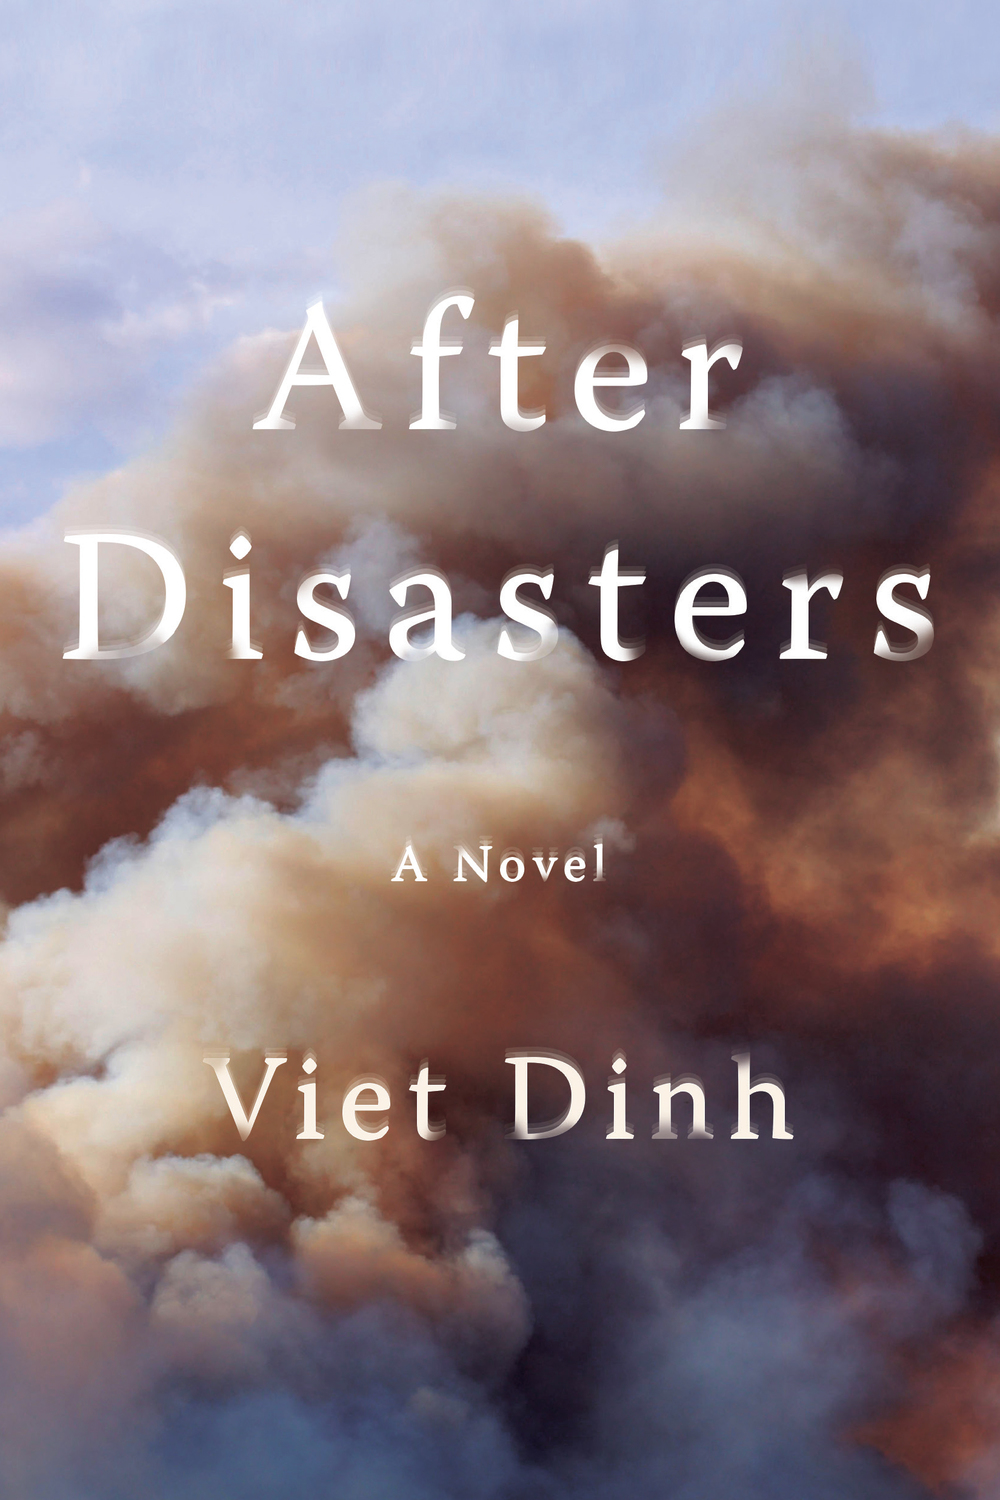 Beautifully and hauntingly written,  After Disasters  is told through the eyes of four people in the wake of a life-shattering earthquake in India. An intricate story of love and loss weaves together the emotional and intimate narratives of Ted, a pharmaceutical salesman turned member of the Disaster Assistance Response Team; his colleague Piotr, who still carries with him the scars of the Bosnia conflict; Andy, a young firefighter eager to prove his worth; and Dev, a doctor on the ground racing against time and dwindling resources. Through time and place, hope and tragedy, love and lust, these four men put their lives at risk in a country where danger lurks everywhere.  O. Henry Prize–winning author Viet Dinh takes us on a moving and evocative journey through an India set with smoky funeral pyres, winding rivers that hold prayers and the deceased, and the rubble of Gujarat, a crumbling place wavering between life and death. As the four men fight to impose order on an increasingly chaotic city, where looting and threats of violence become more severe, they realize the first lives they save might be their own.